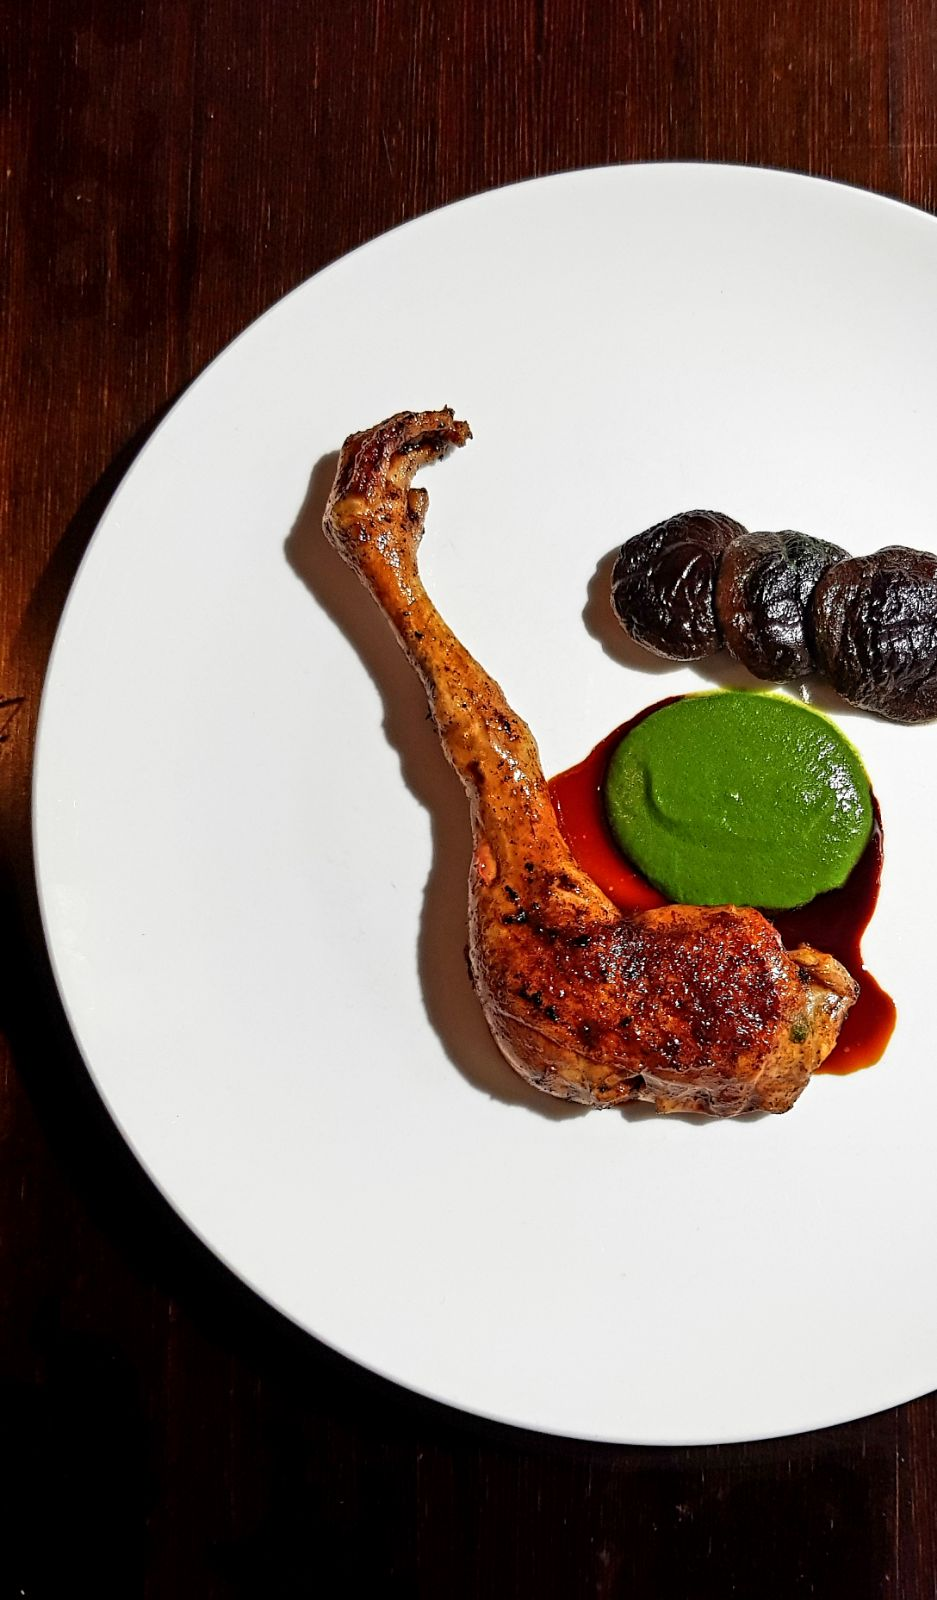 Pearl chicken leg with spinach sauce and sauce-glaze of birch sap syrup